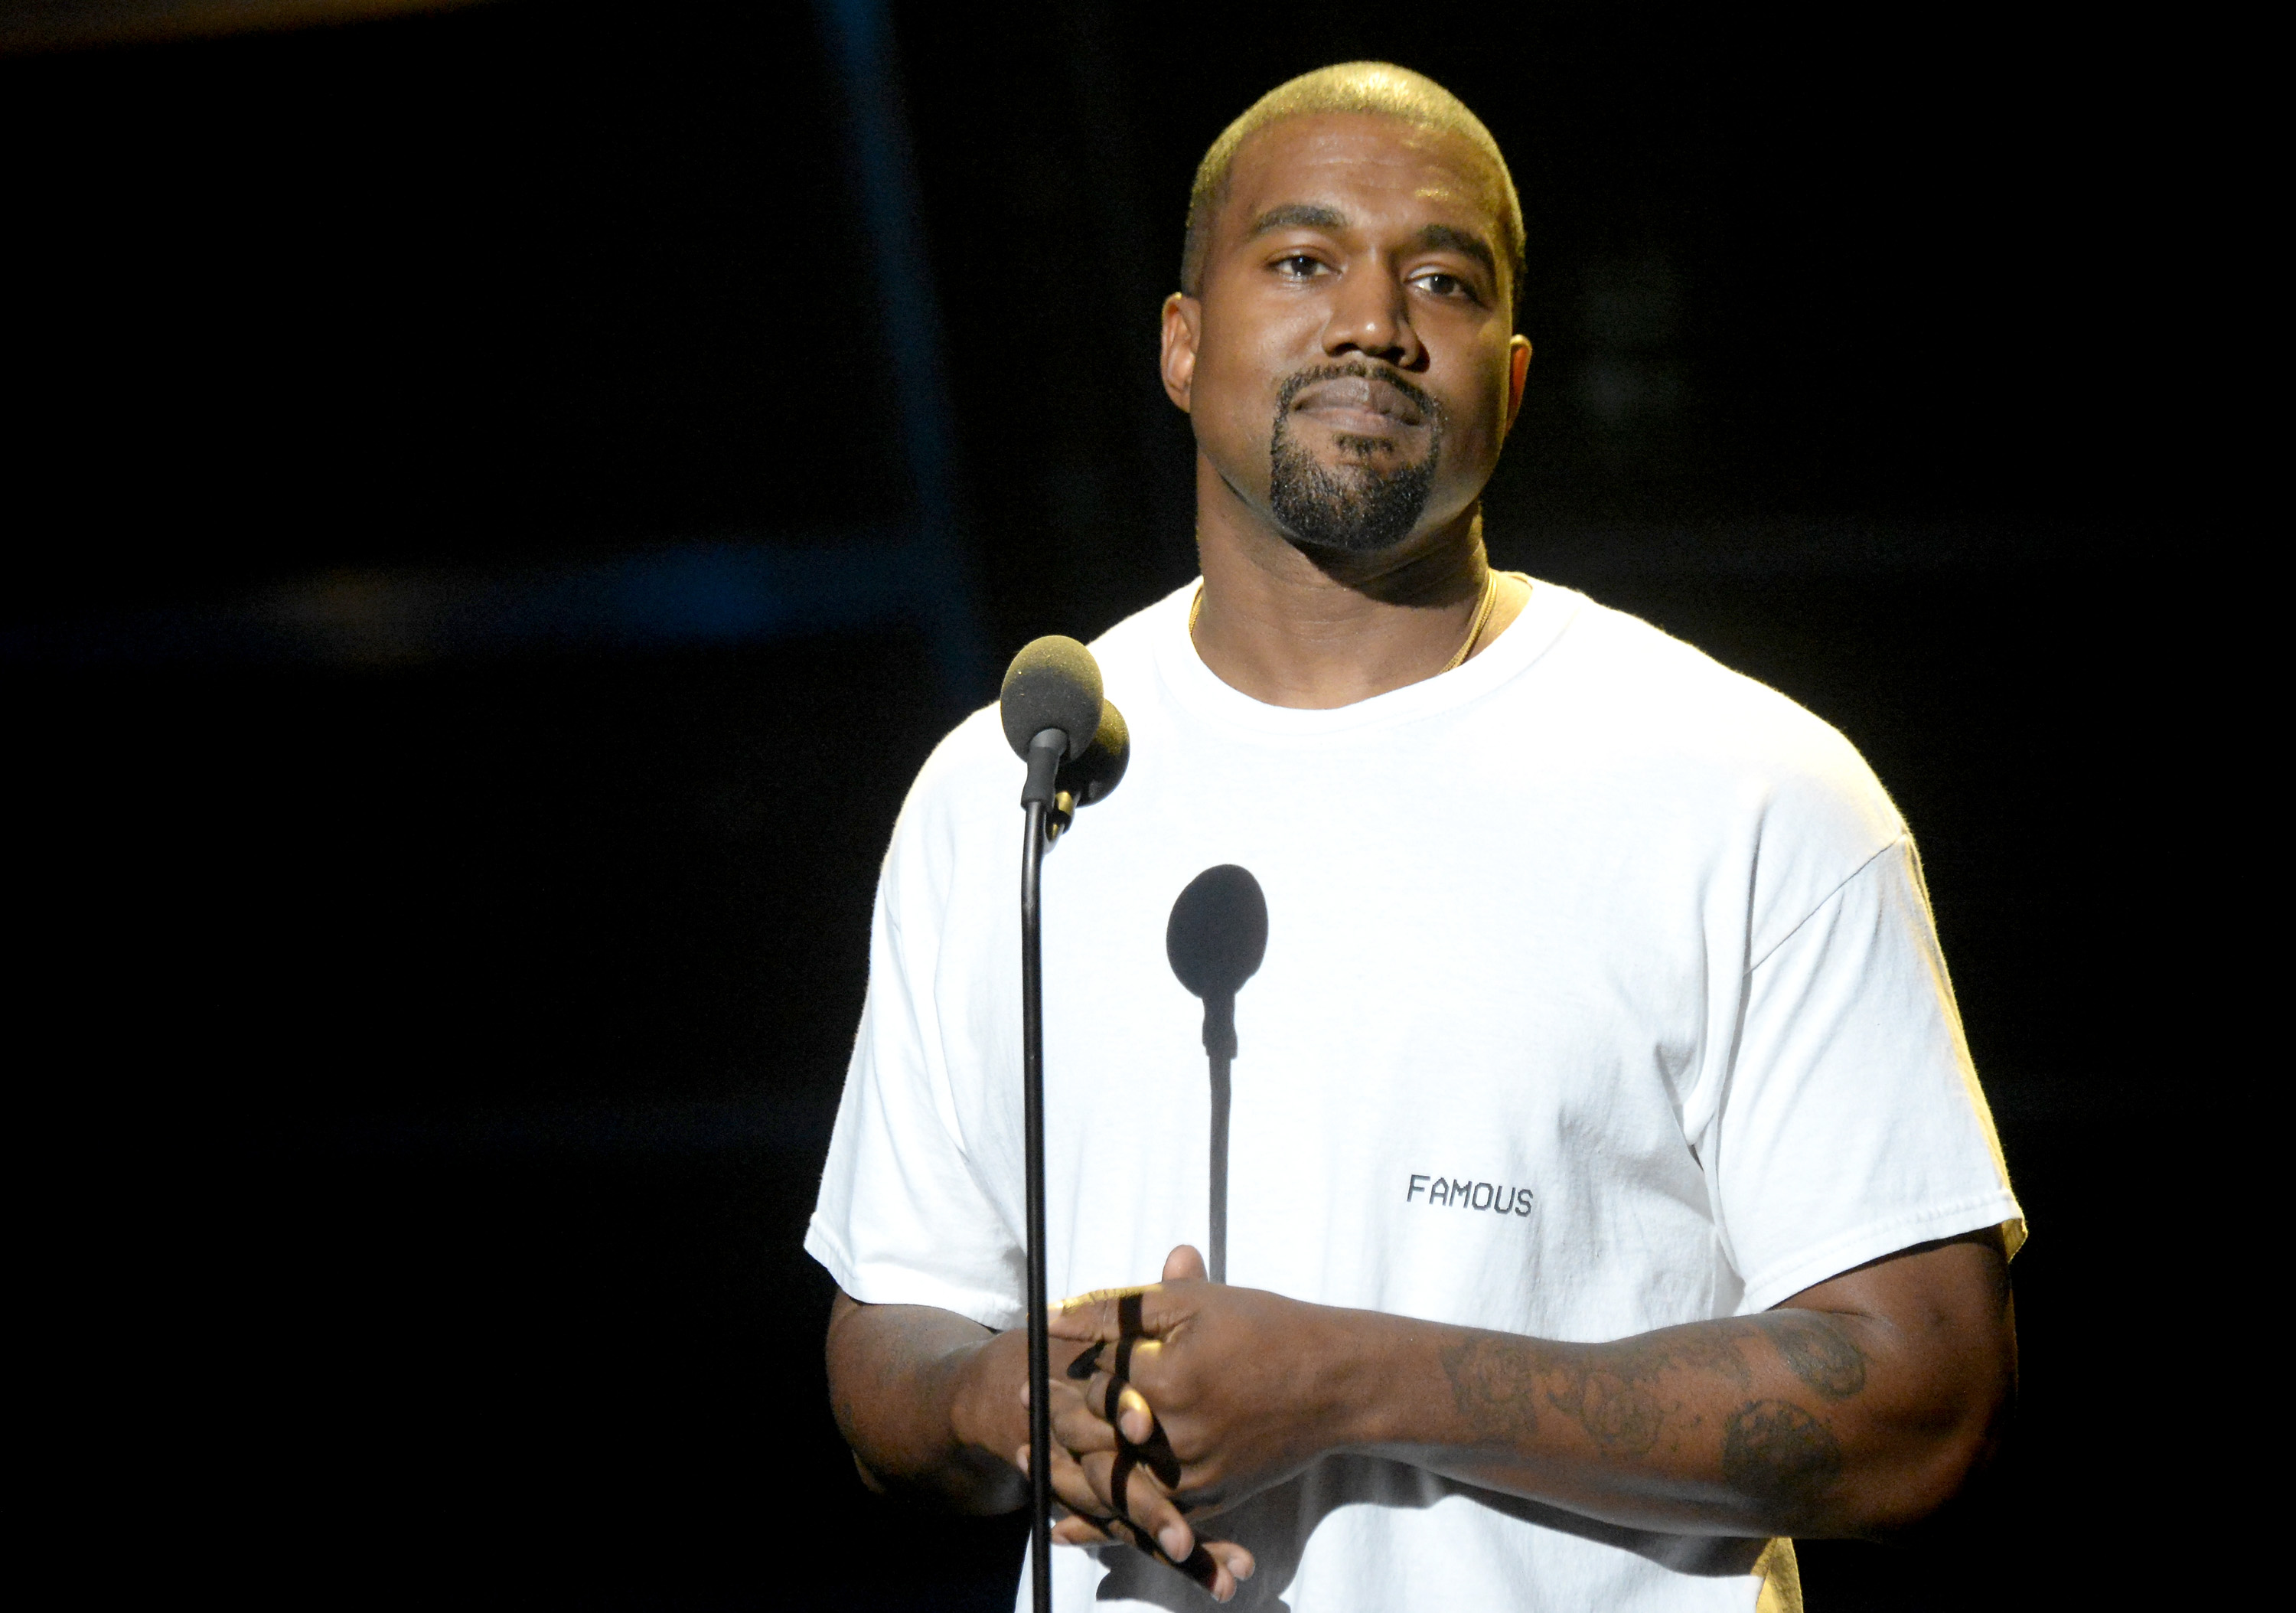 Kanye West's Instagram is back, and he keeps posting pics of abusive and failed celeb couples